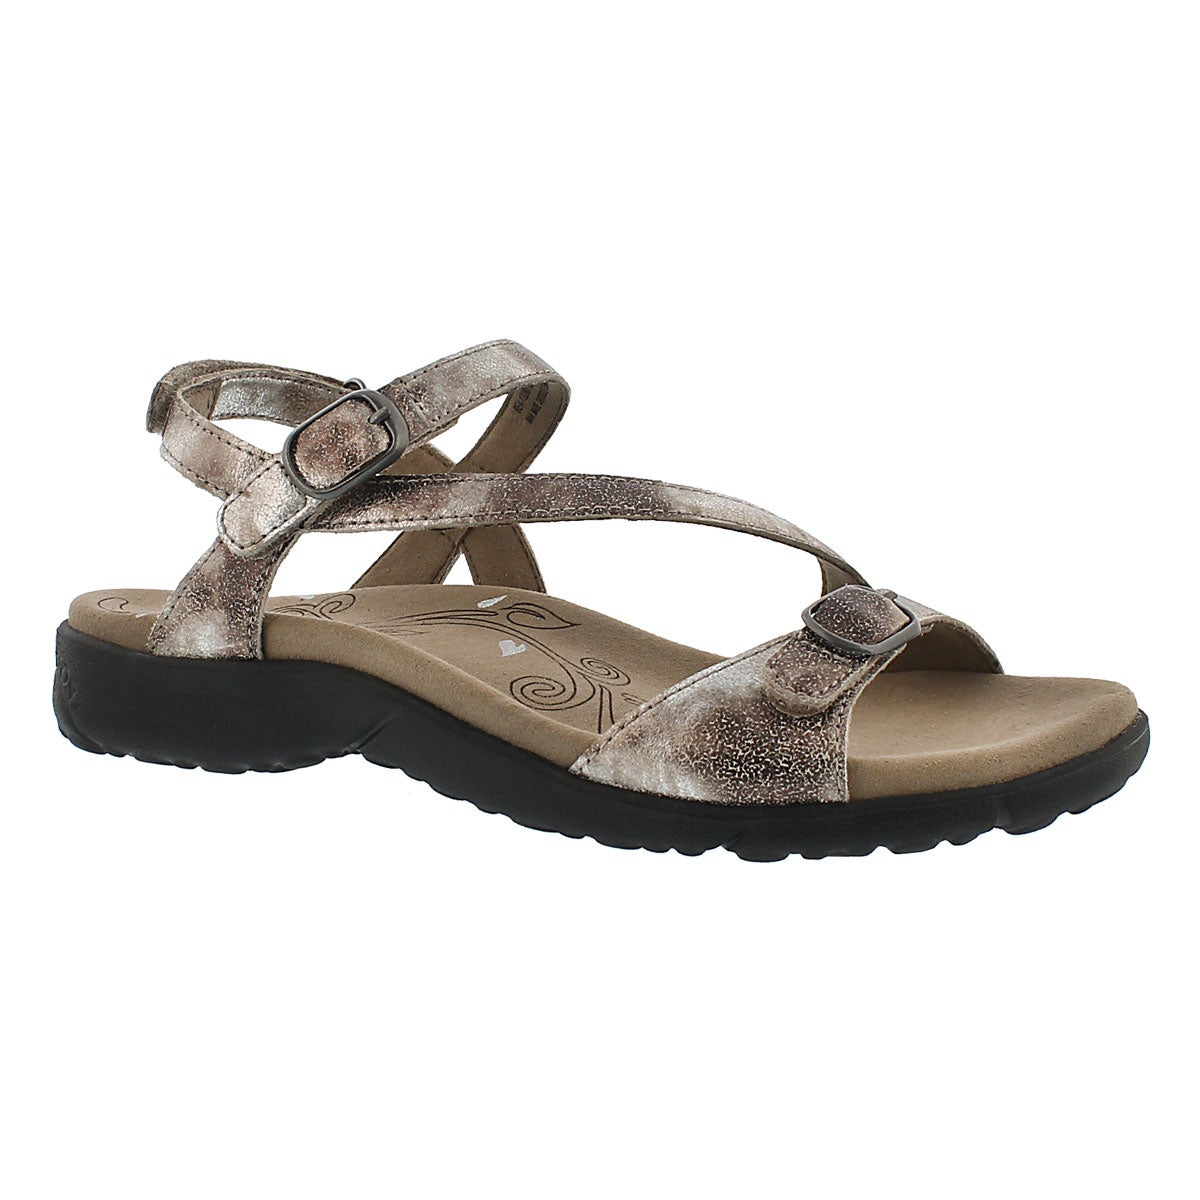 Lds Beauty silver casual sandal